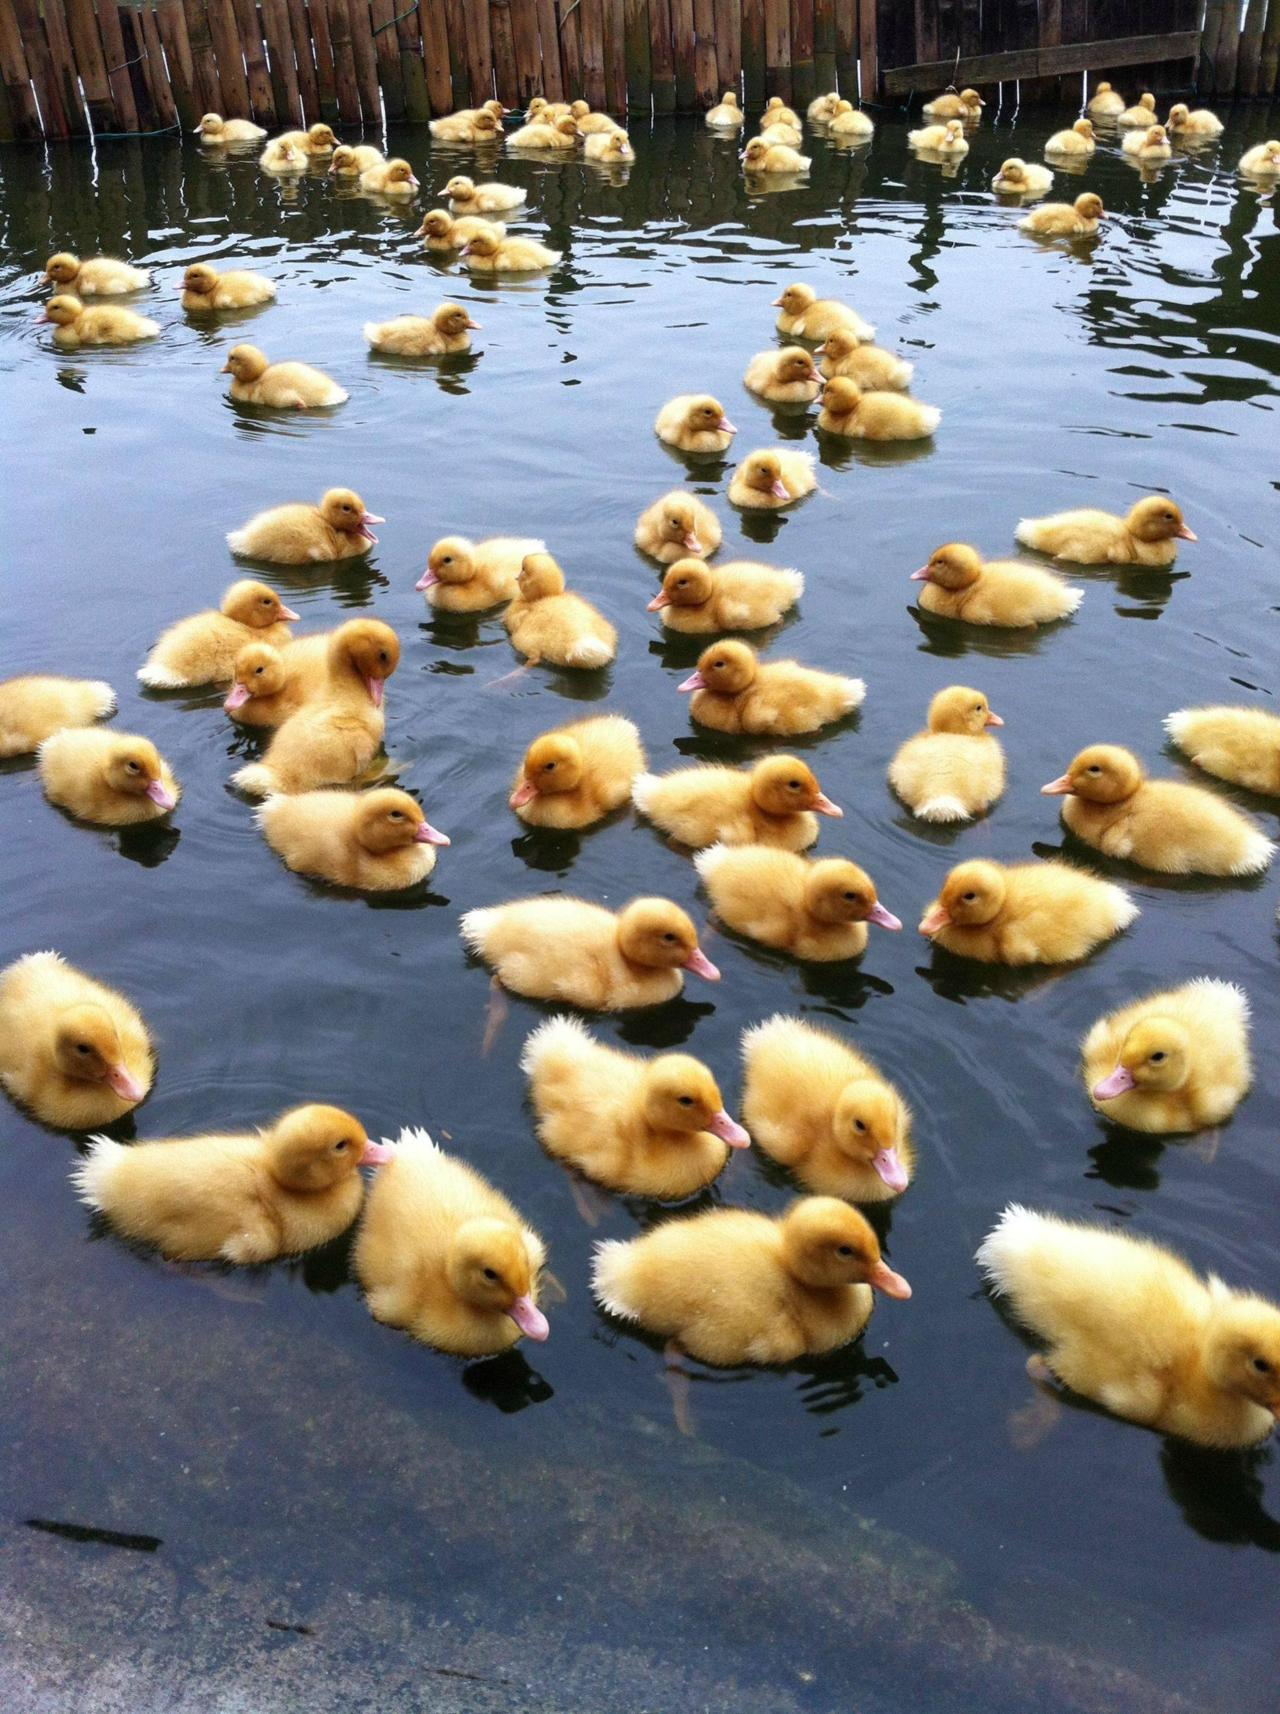 We need more ducks! Photo via Imgur